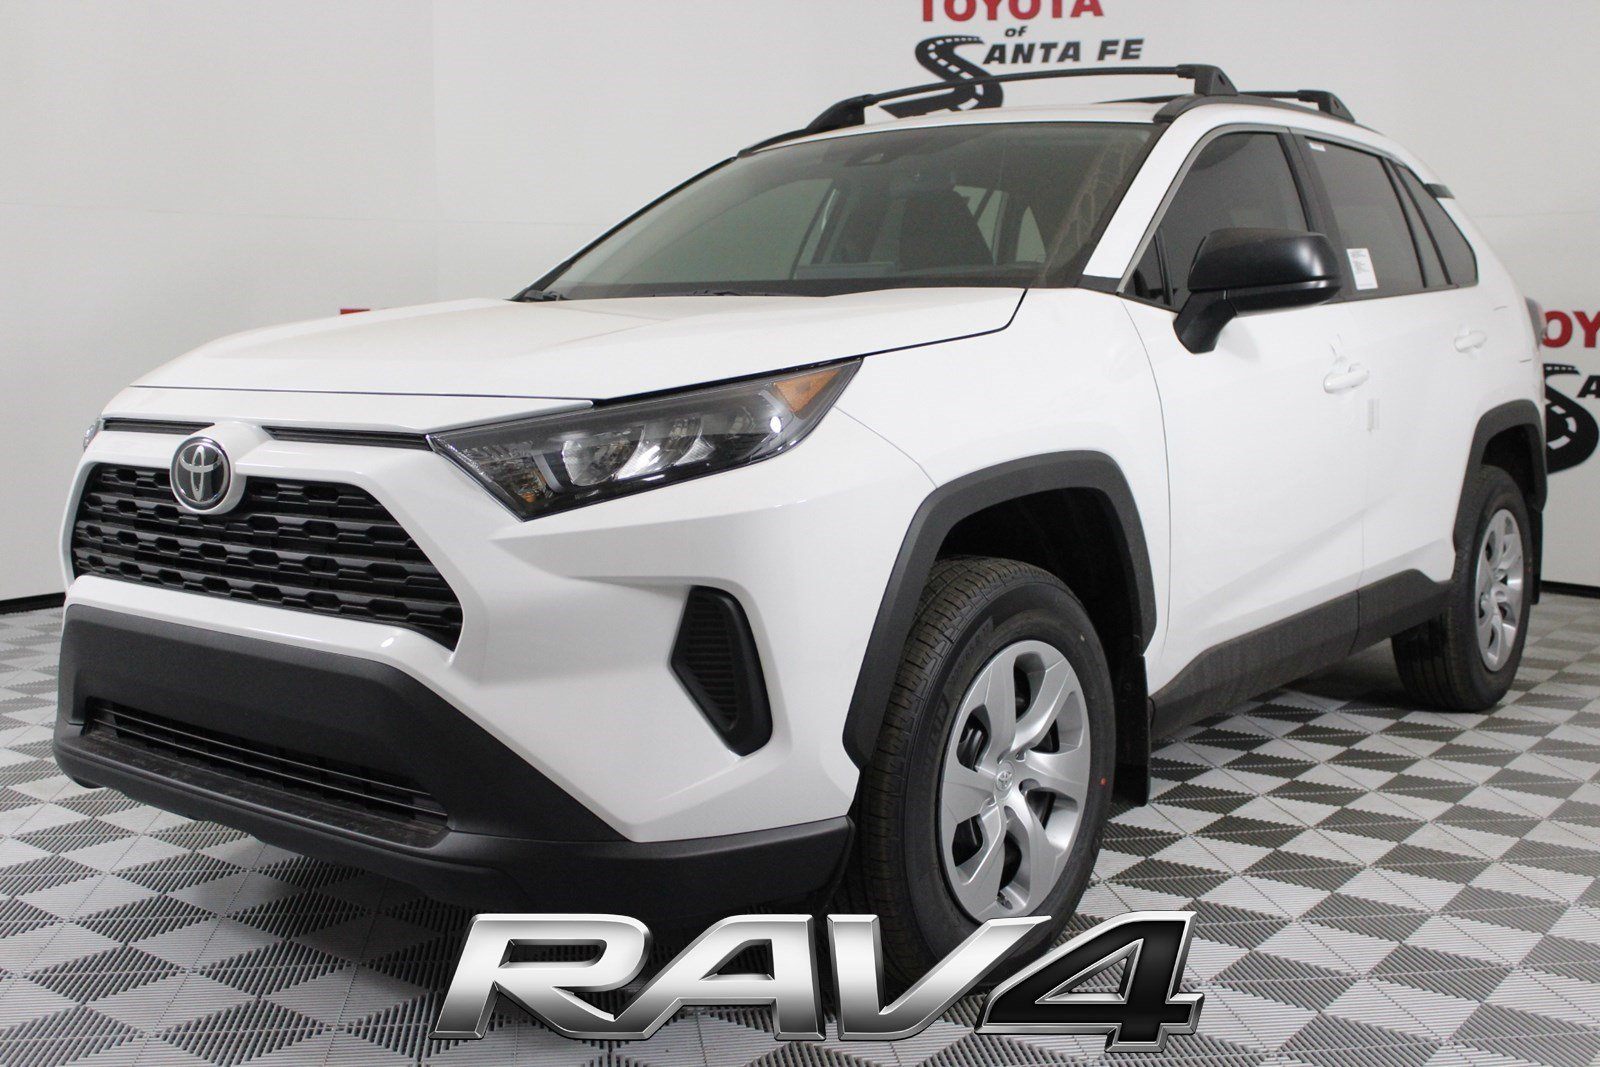 New 2019 Toyota Rav4 Le In Santa Fe Kw004012 Toyota Of Santa Fe